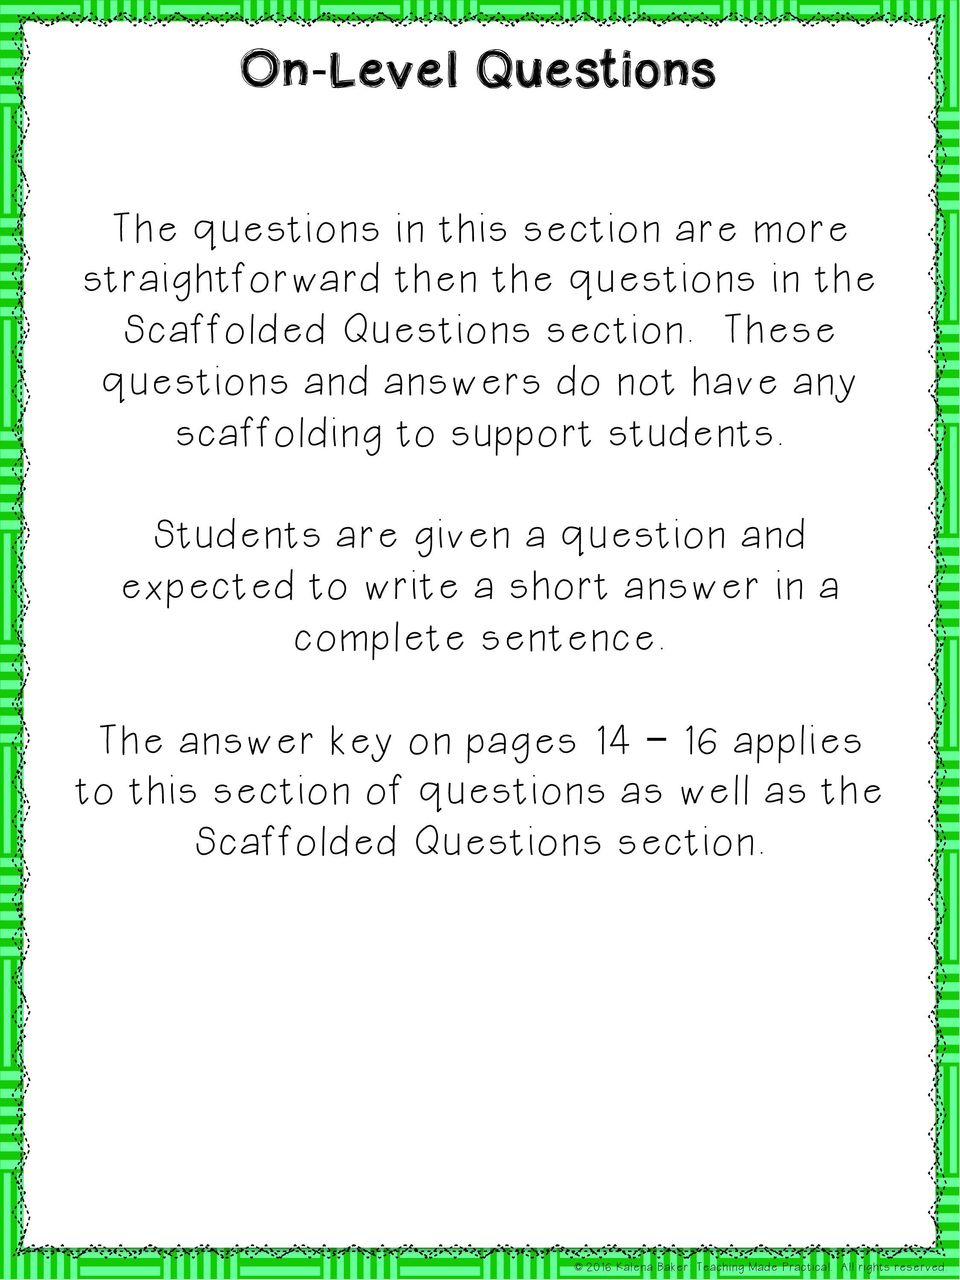 These questions and answers do not have any scaffolding to support students.